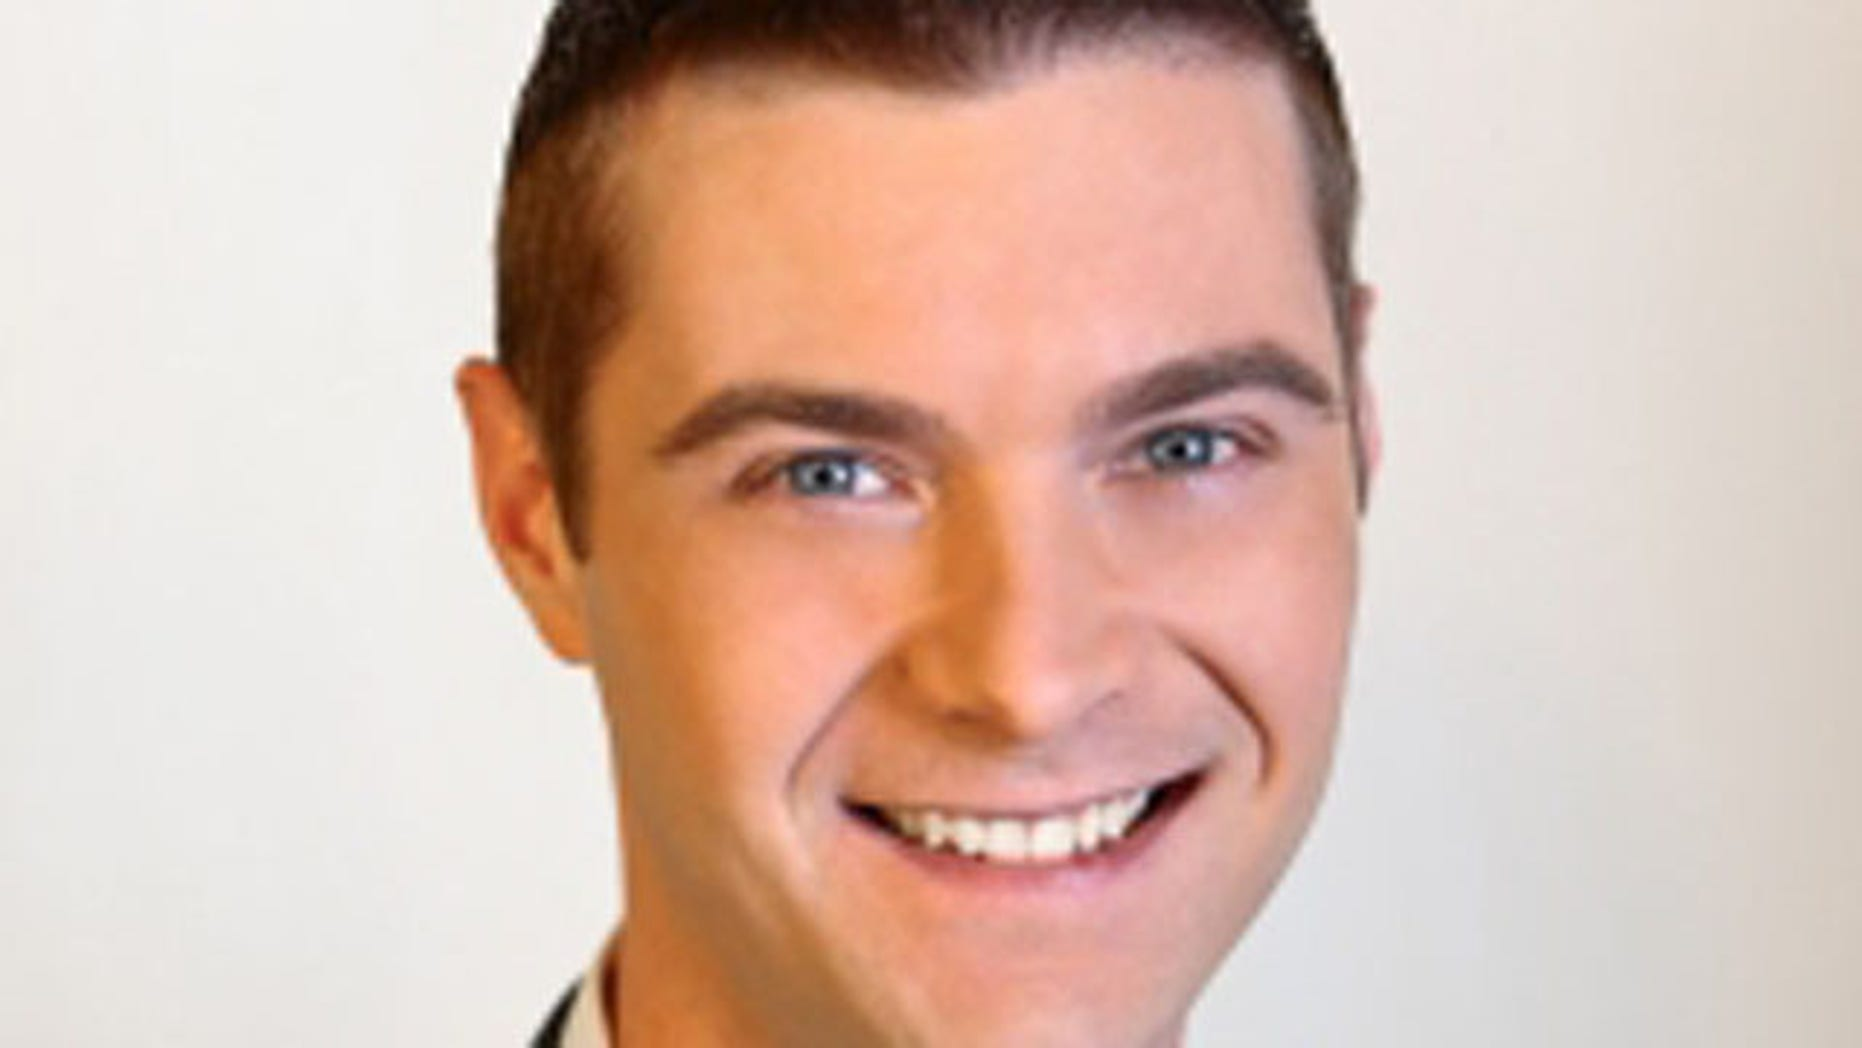 Brett Cummins, 33, is seen in a photo on the website  of Little Rock station KARK-TV. Cummins works as a meteorologist for the station.